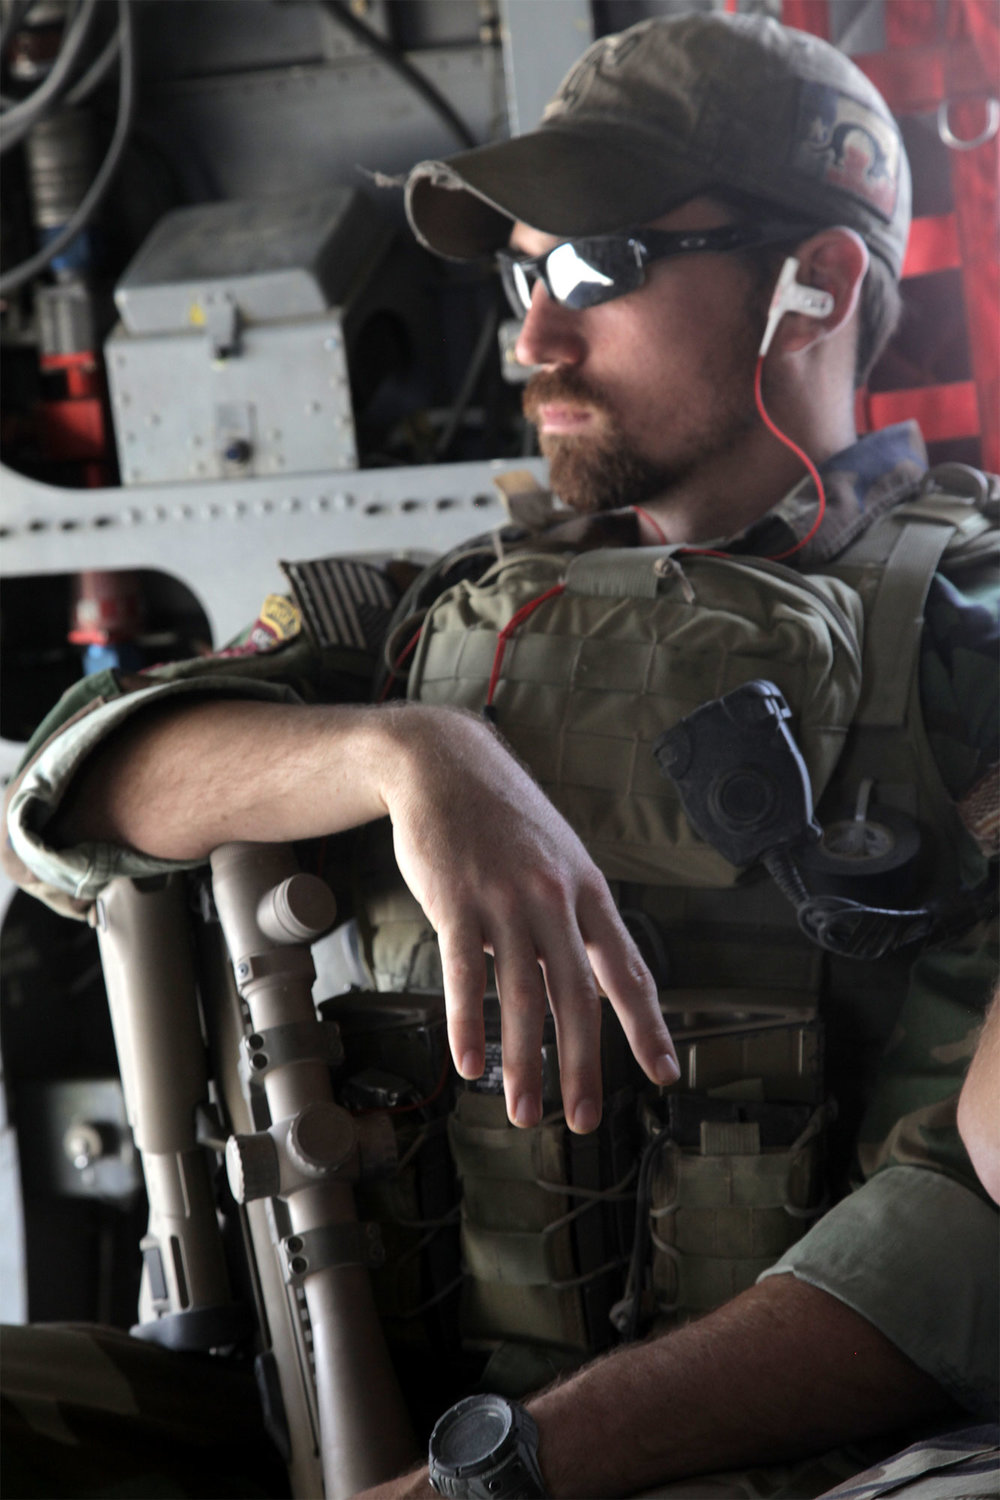 """U.S. Army Staff Sgt. Jeremie """"JBo"""" """"Bubba"""" Border, 28, of Mesquite, Texas, assigned to the 1st Battalion, 1st Special Forces Group (Airborne), based in Torii Station, Okinawa, Japan, died Sept. 1, 2012, in Batur Village, Afghanistan, from wounds suffered when enemy forces attacked his unit with small-arms fire. He is survived by his parents, Mary Border and Robert Harris; sisters, DeLaynie Peek, Katie Border, Ashley Harris and Amanda Pereira; nephews, Robbie and Kayden Pereira; and brothers-in-law, Jason Peek and Roberto Pereira."""